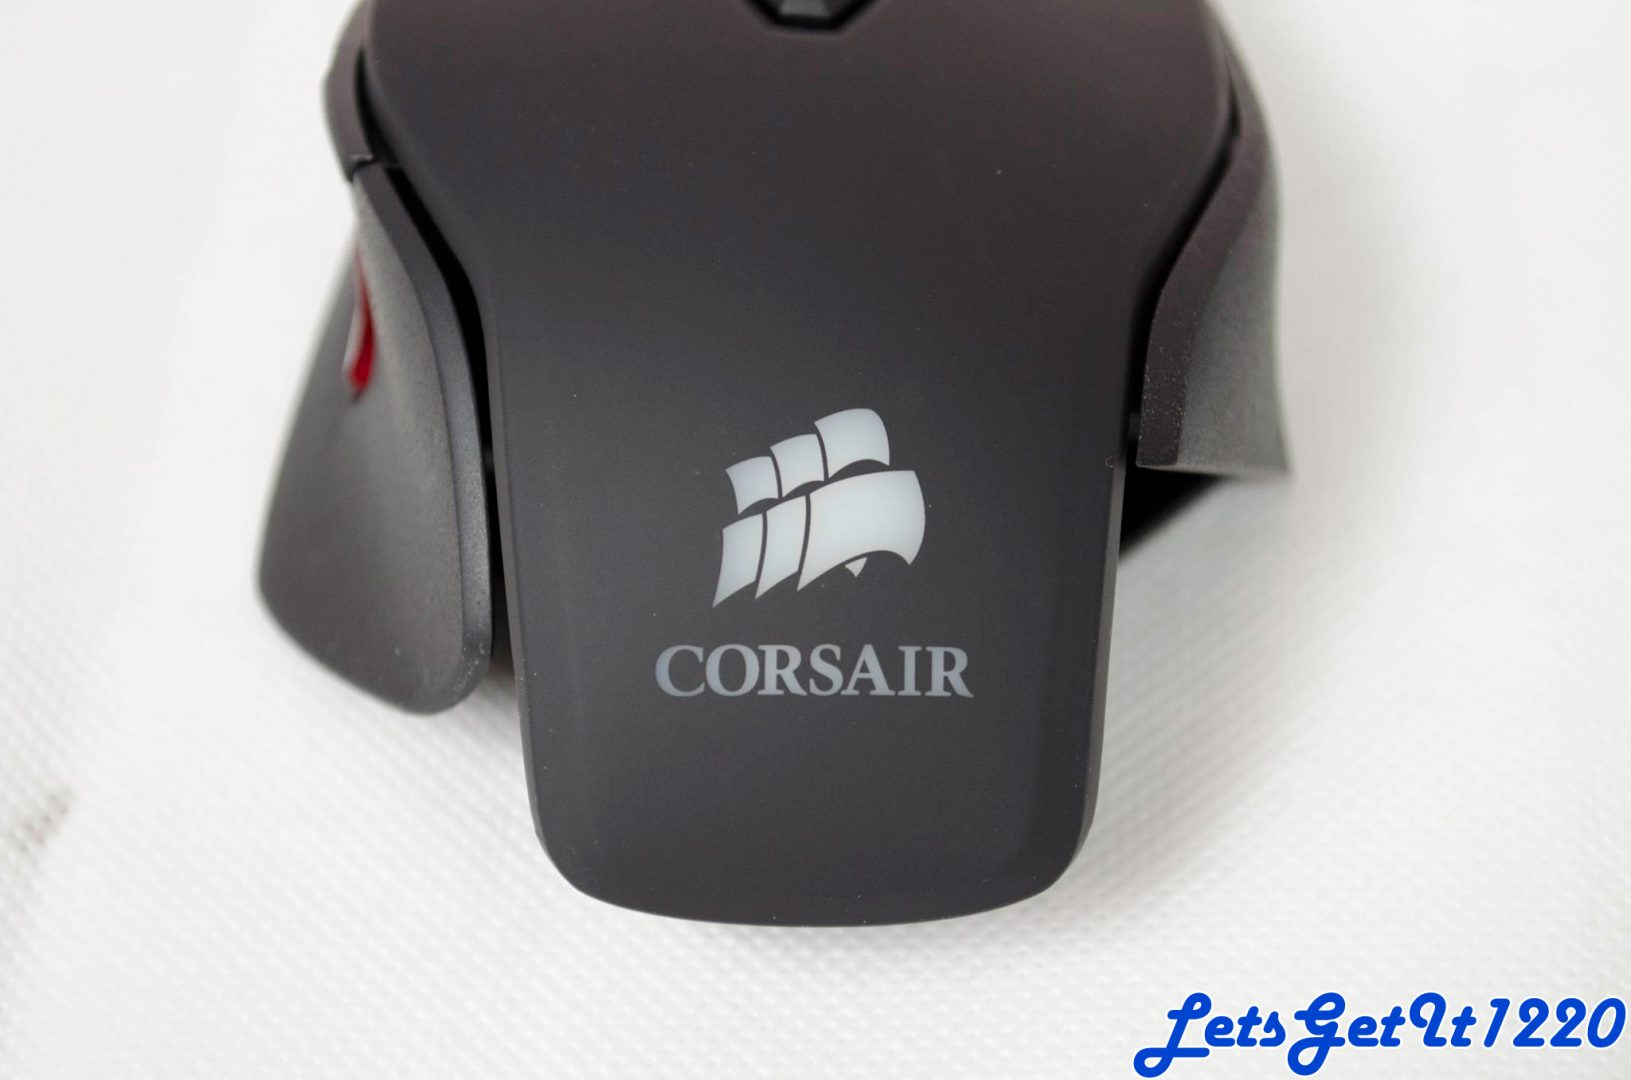 Corsair Vengeance Gaming M65 RGB Mouse Overview